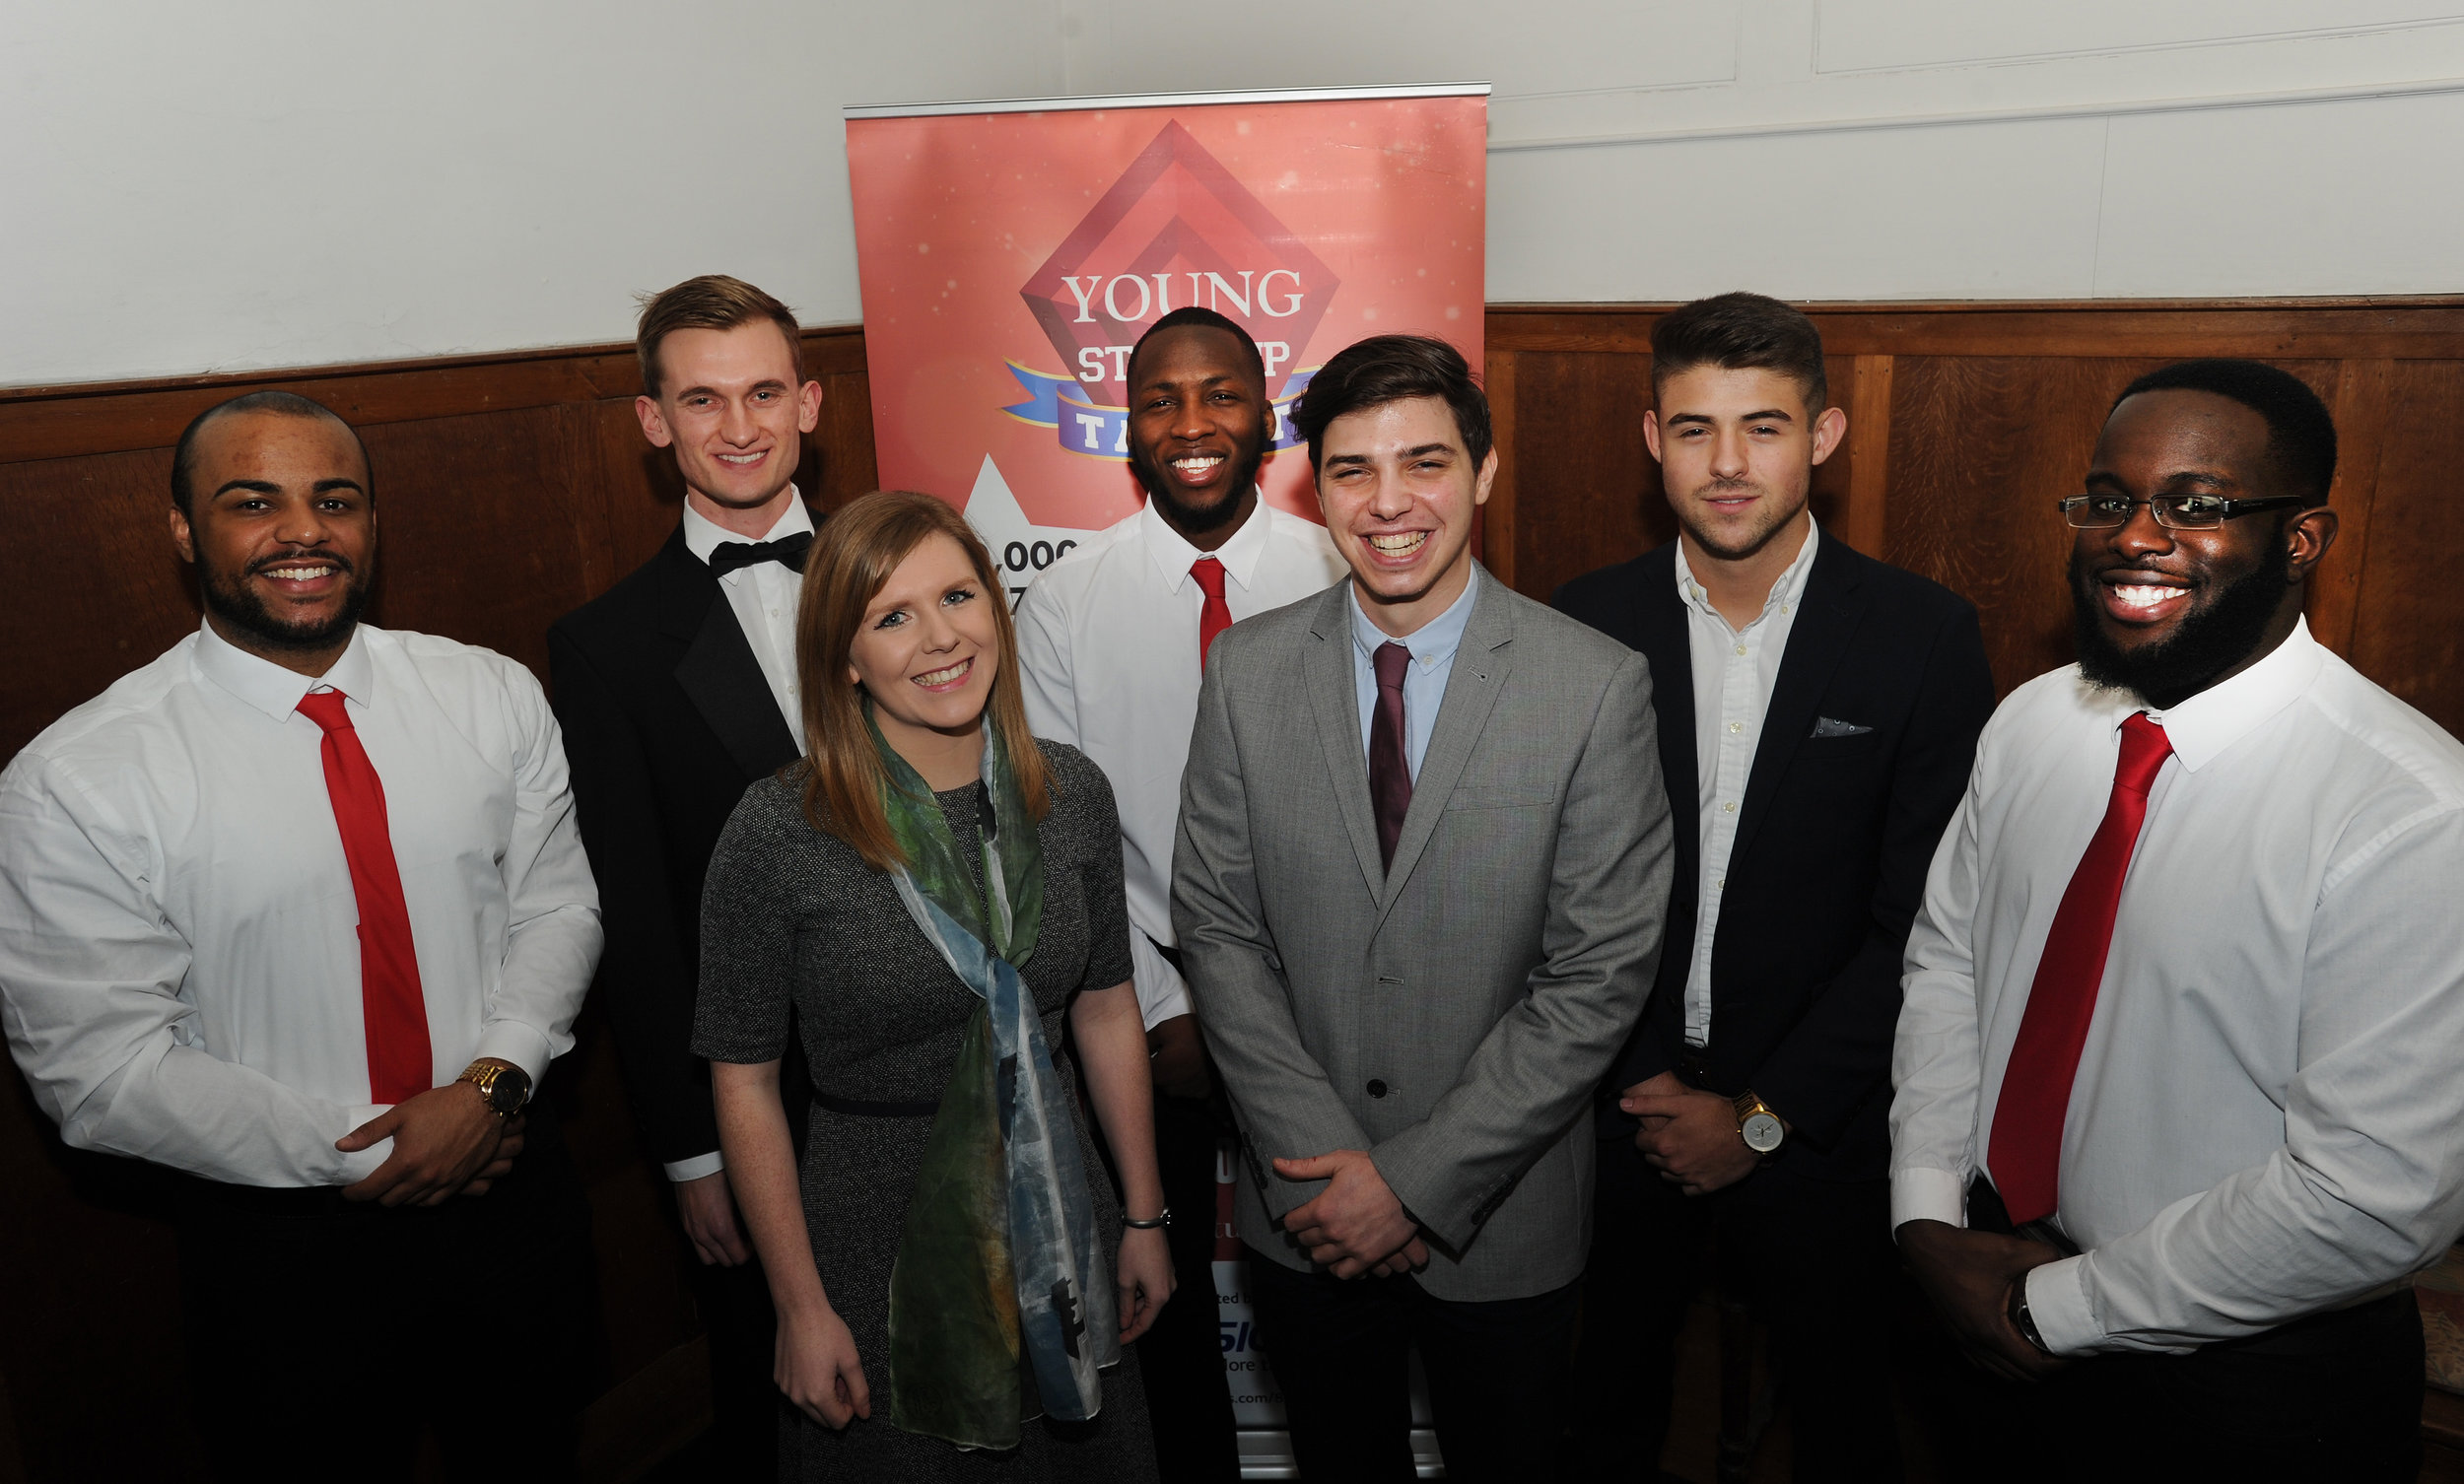 YST Brighton finalists - left to right Ardie Yilinkou, George Lengyel, Georgia Crawford, Junior Fassim, Andreas Georgiades, Jack Maddalena and Gabriel Meidt